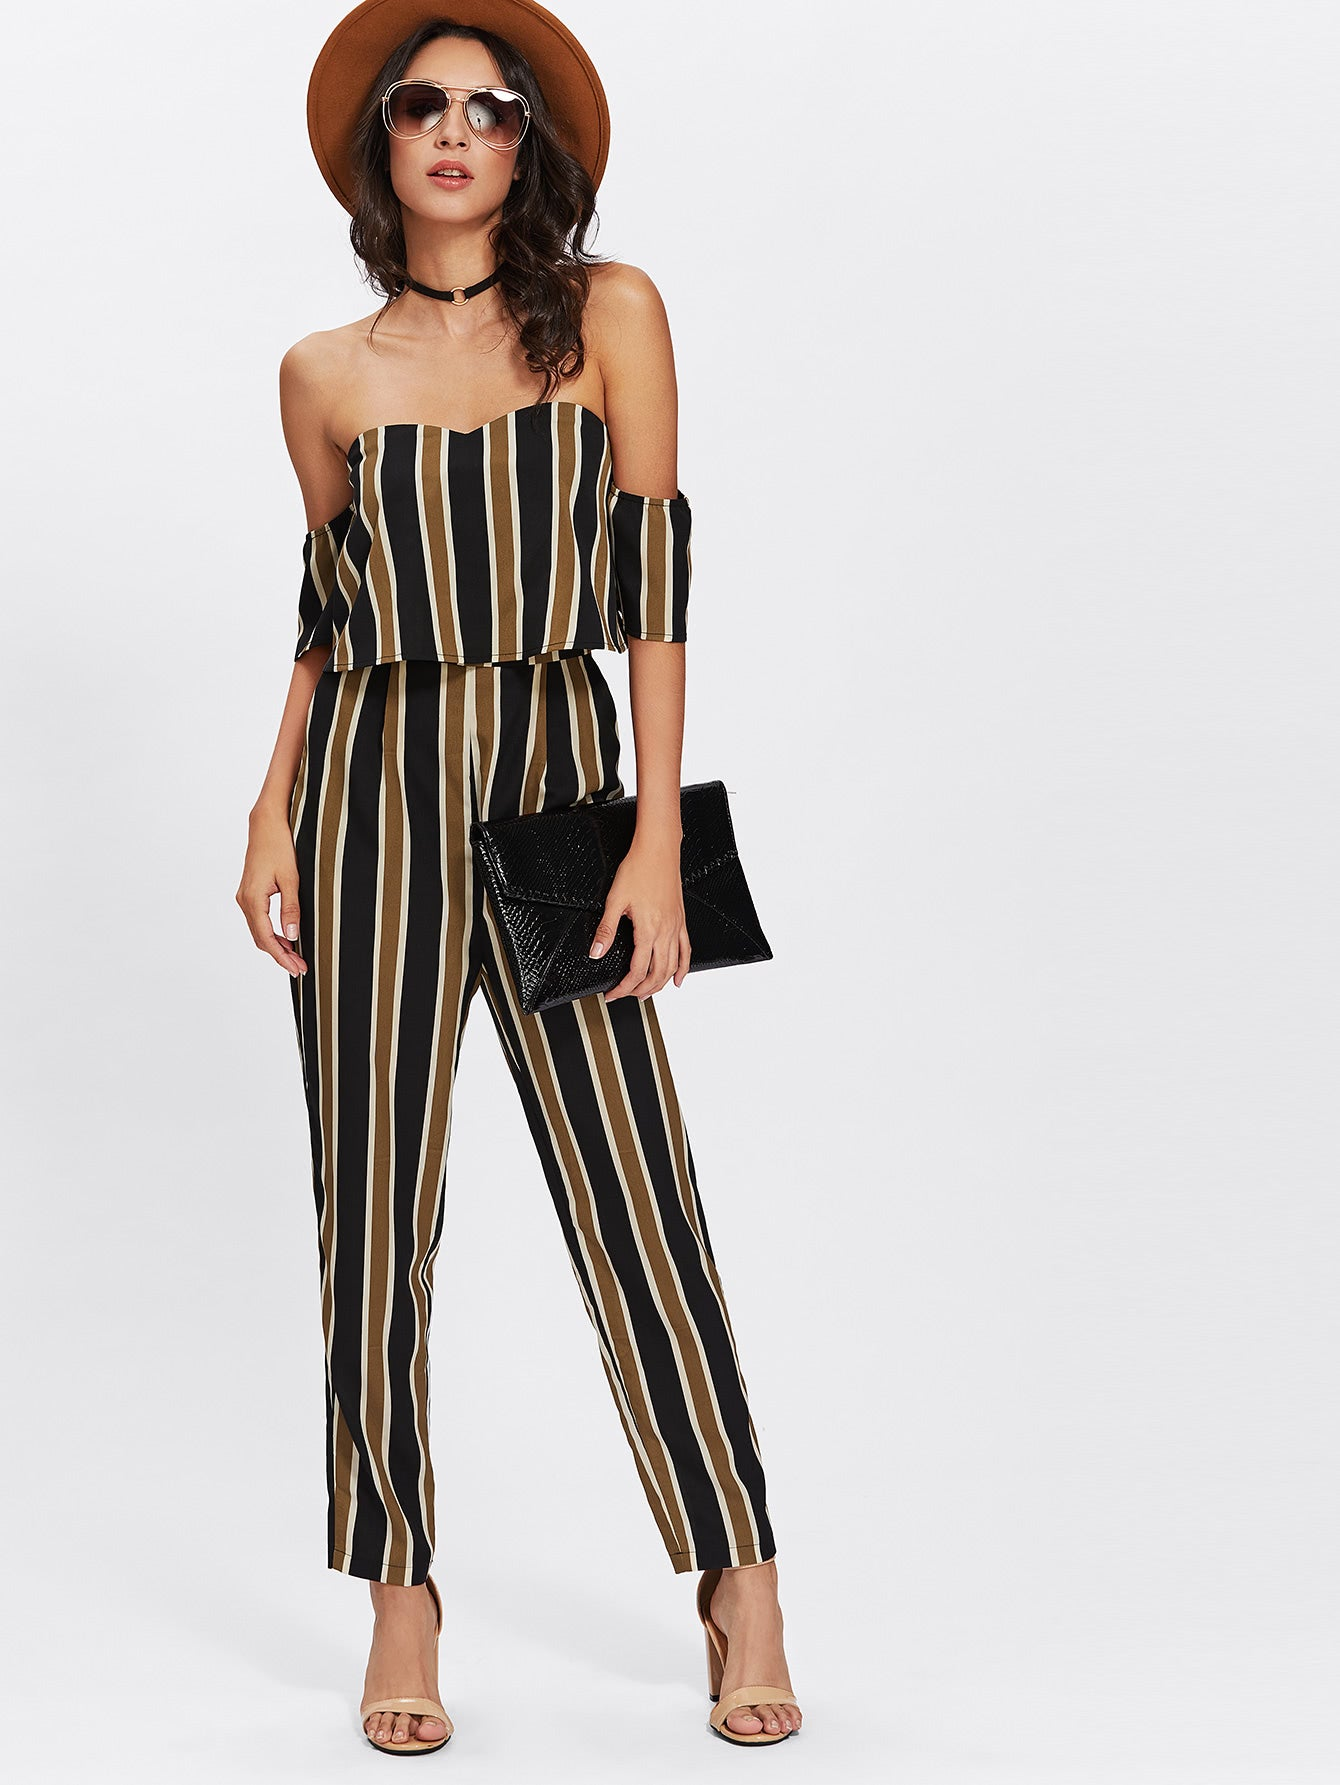 Aviana - Stripe Jumpsuit